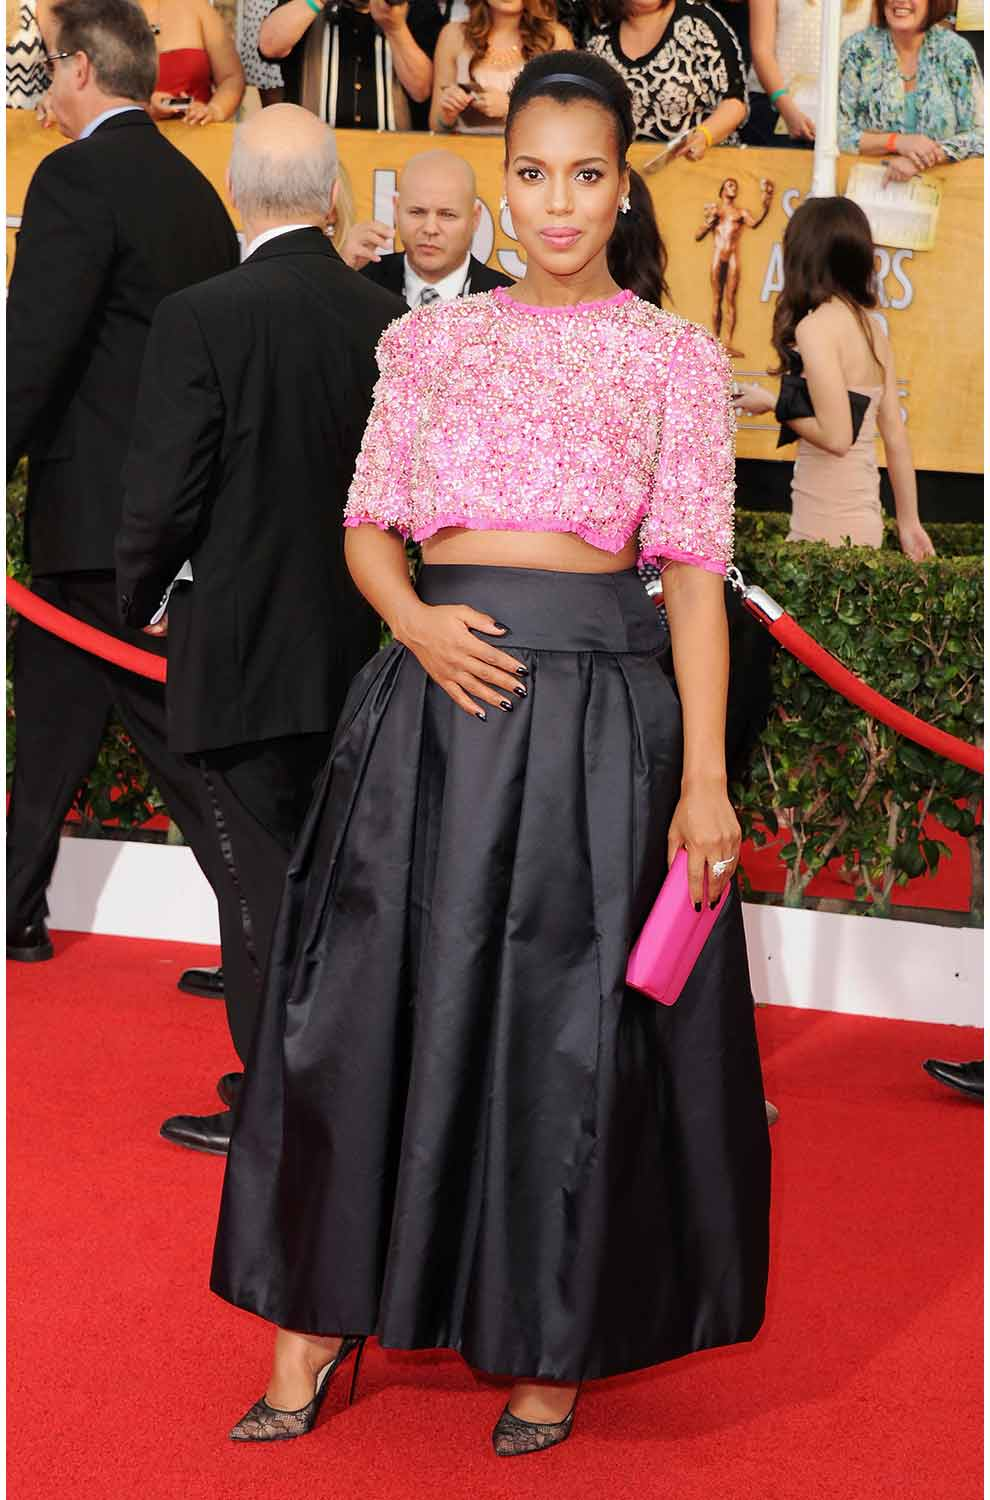 kerry-washington-arrives-at-the-20th-annual-screen-actors-guild-awards-at-the-shrine-auditorium